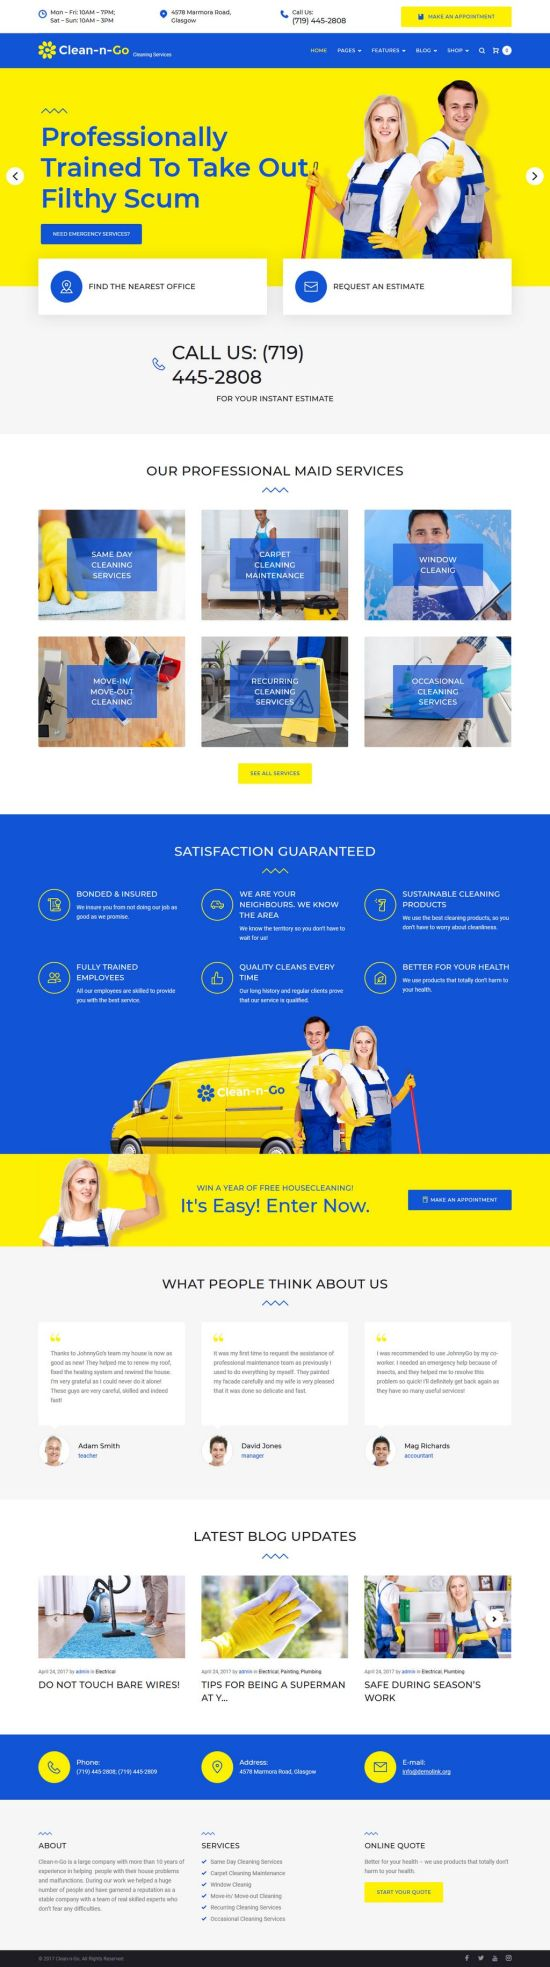 clean n go wordpress theme 01 - Clean-n-Go WordPress Theme